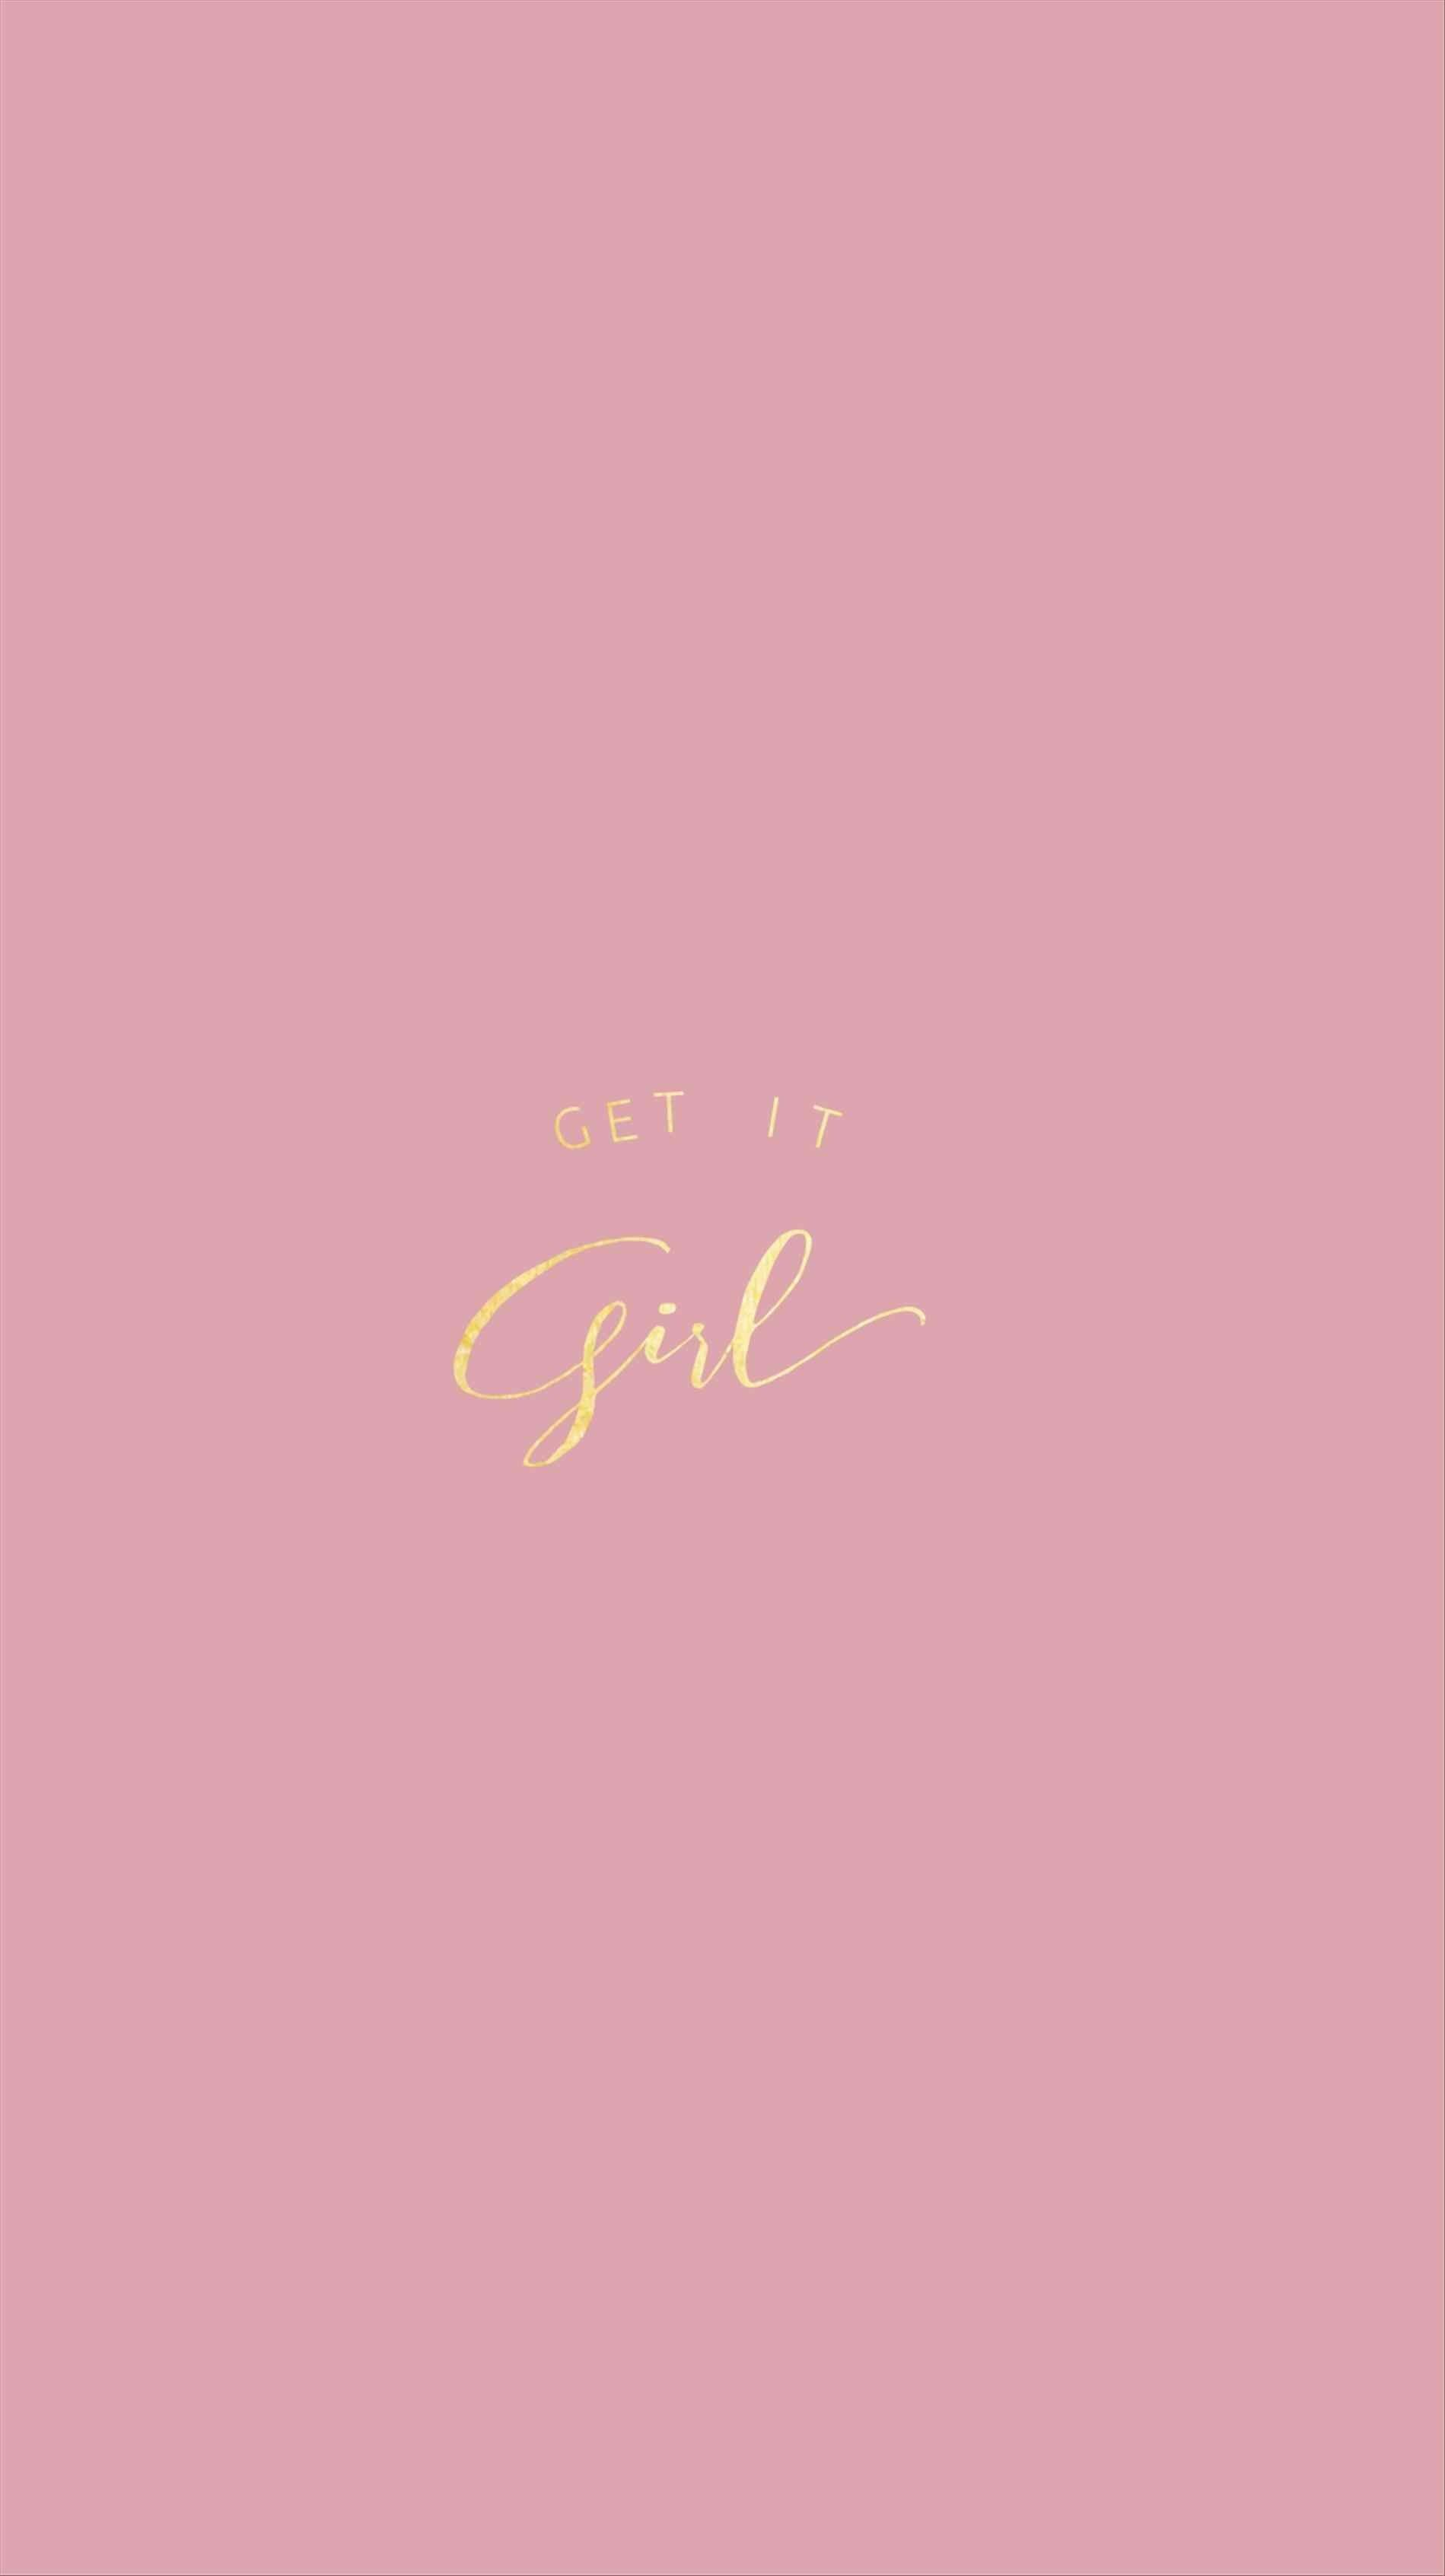 Iphone Rose Gold Cute Wallpaper For Girls